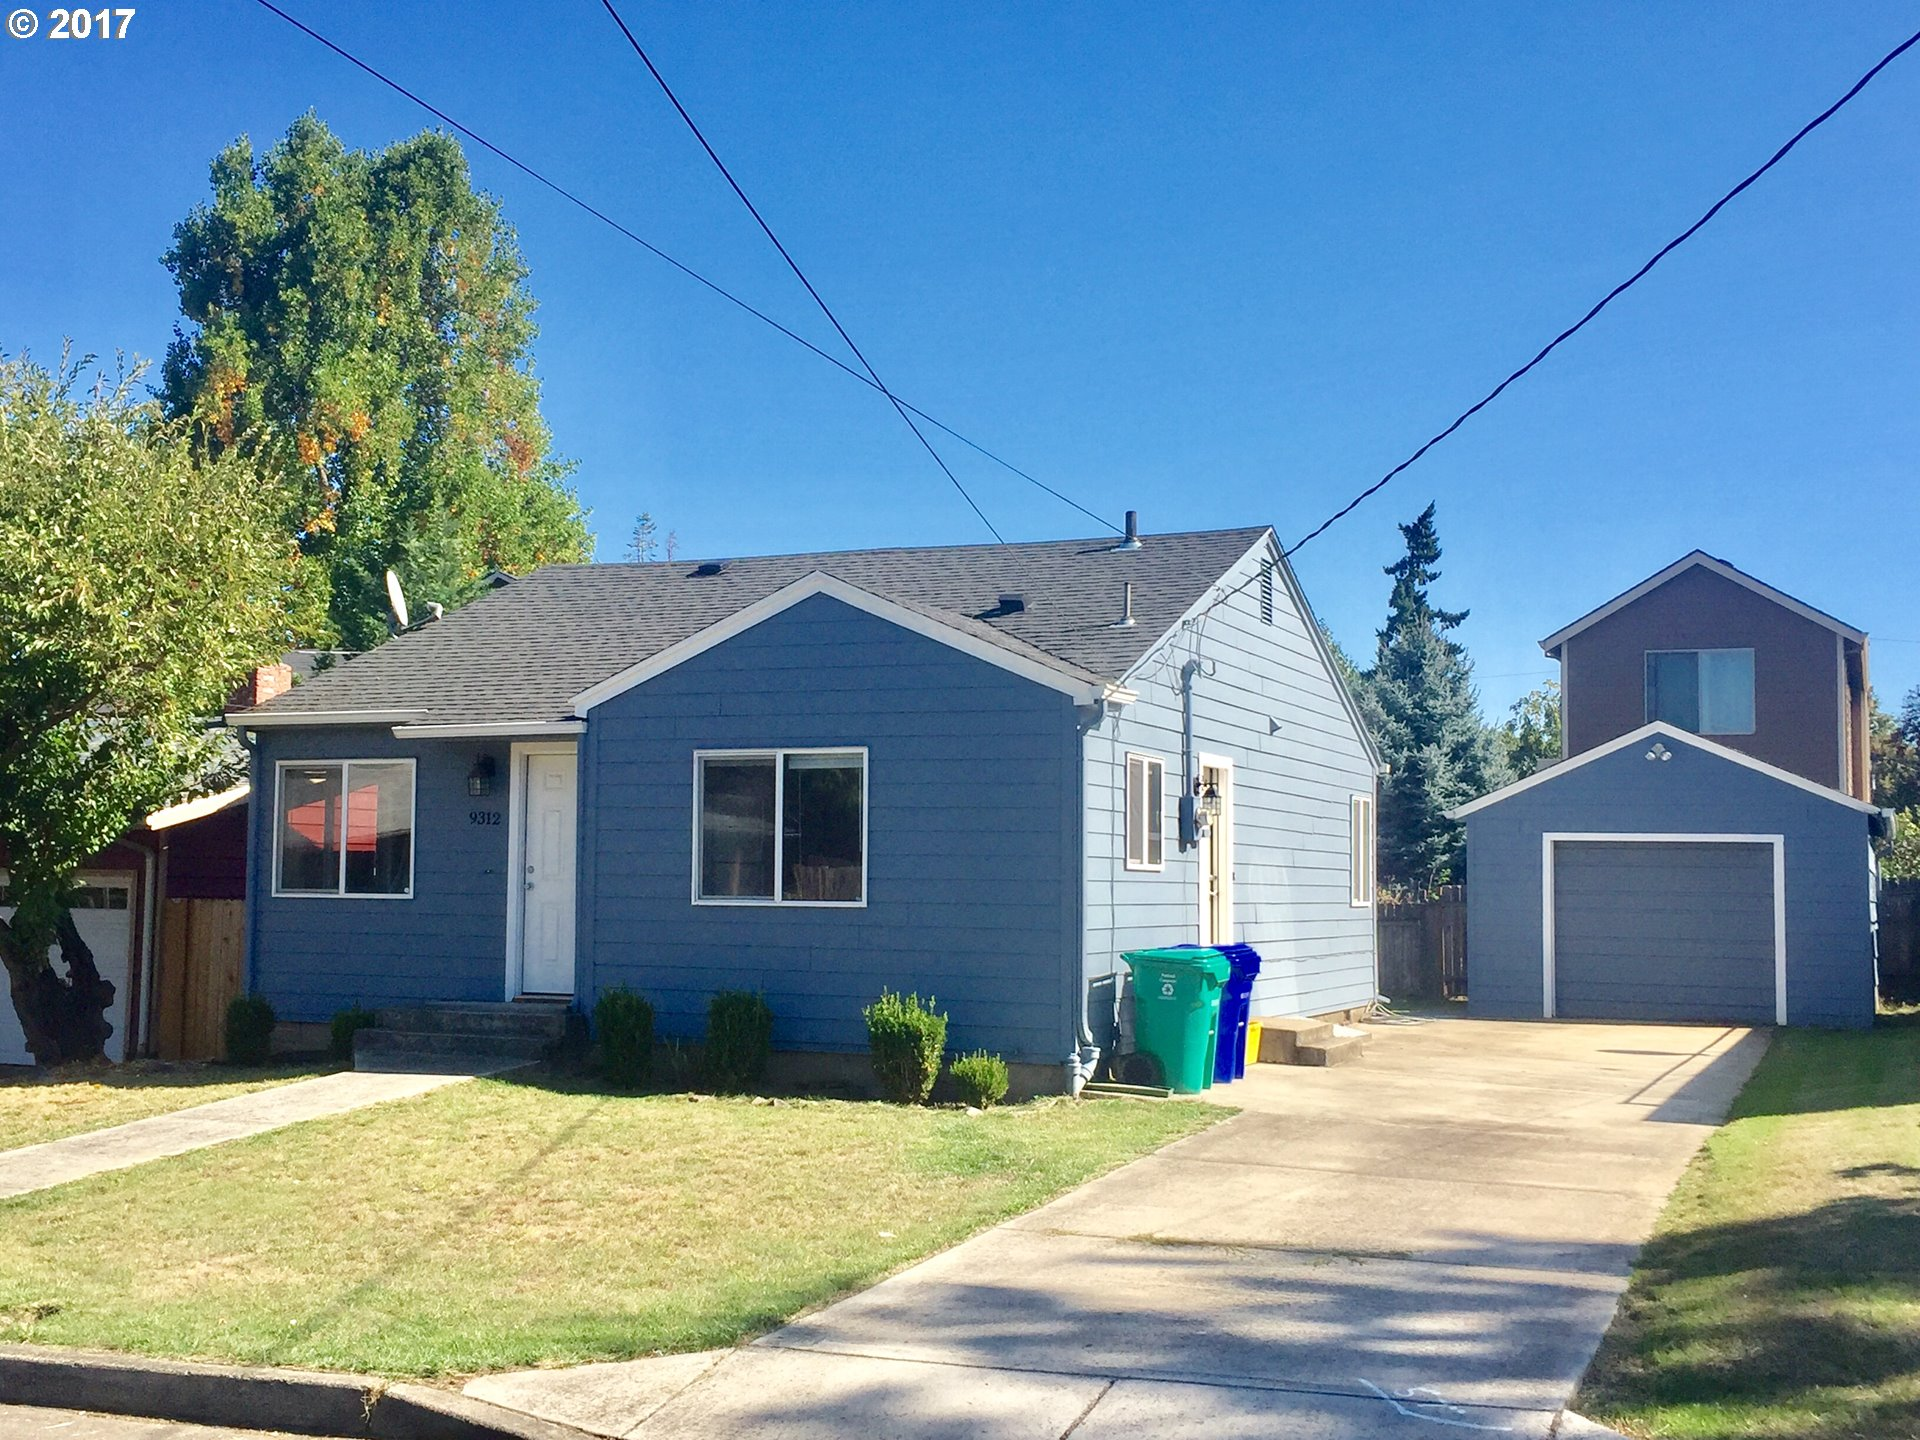 Nice 2 bedroom in a Great St. Johns Location. Remodeled home that is very energy efficient. This home includes bamboo flooring, newer roof and siding, nice back yard, detached garage and much more.